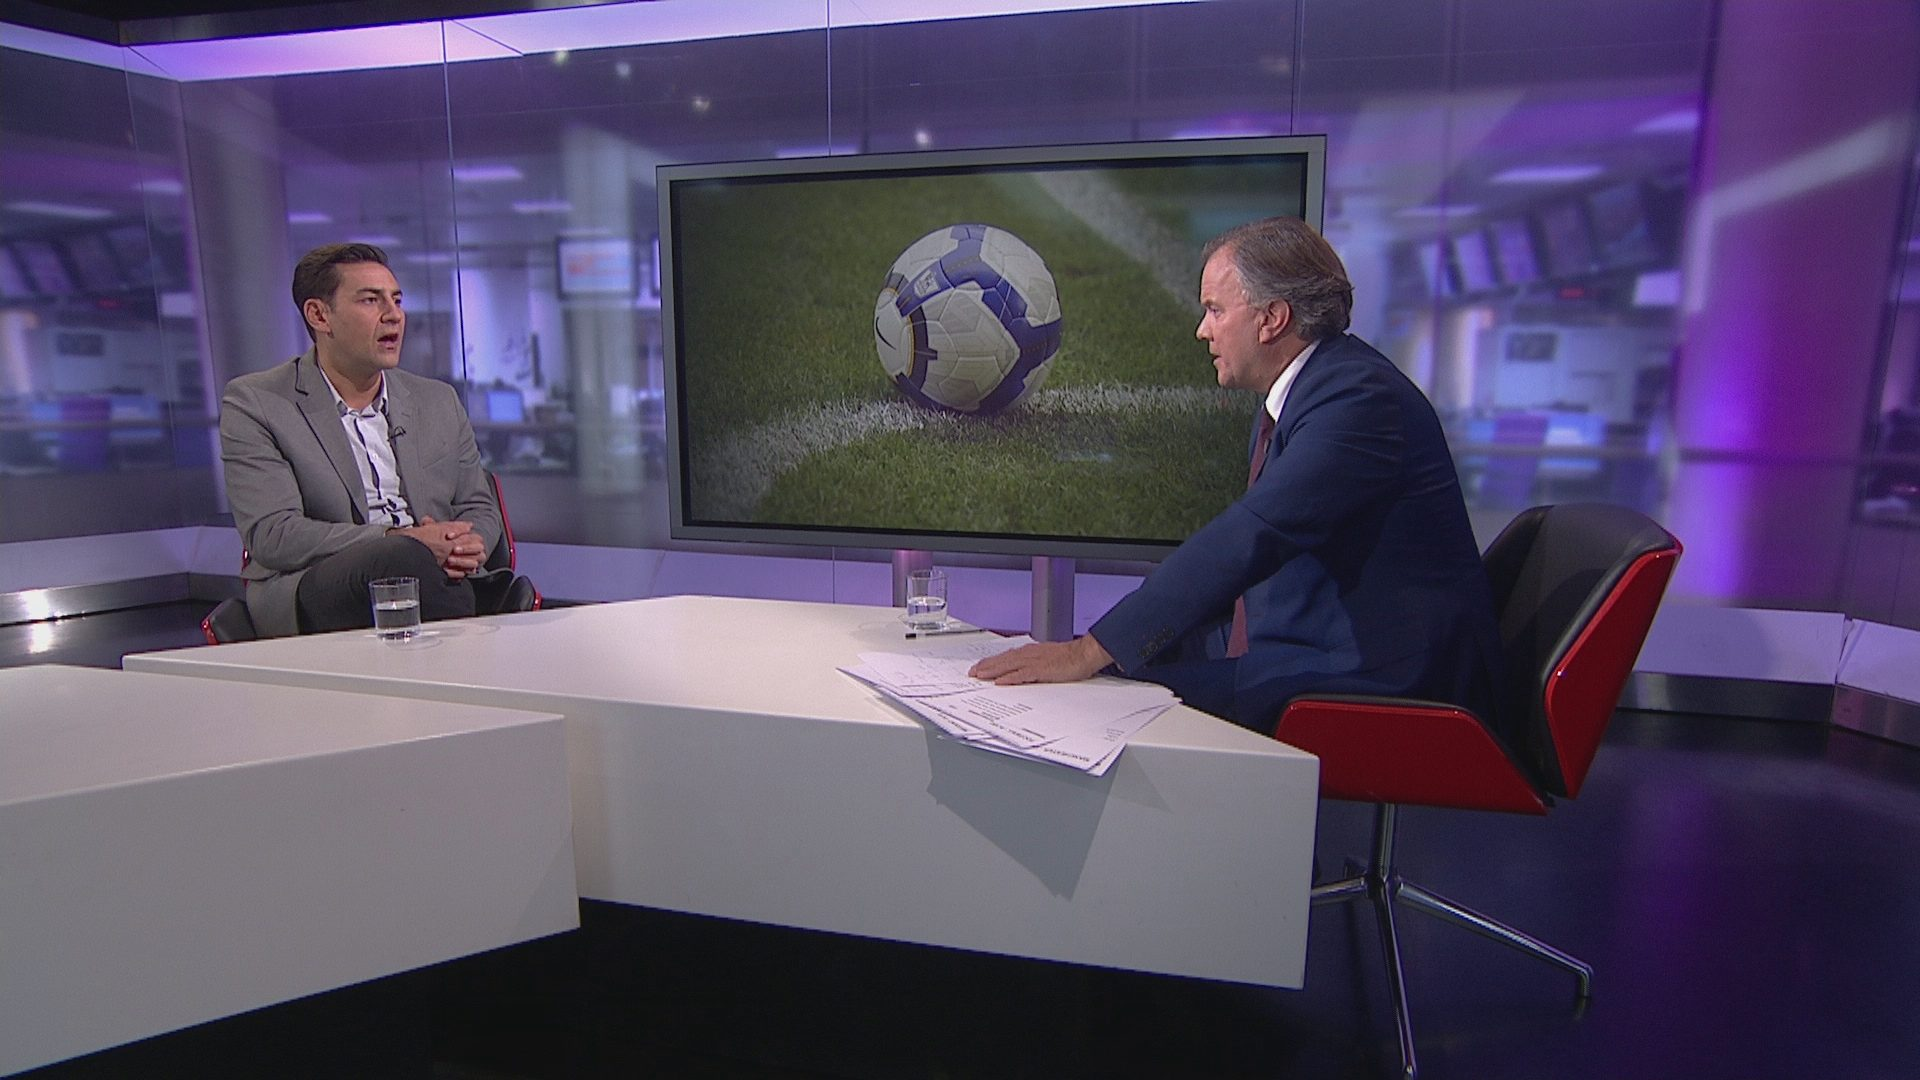 Football abuse: Andy Woodward interview – Channel 4 News